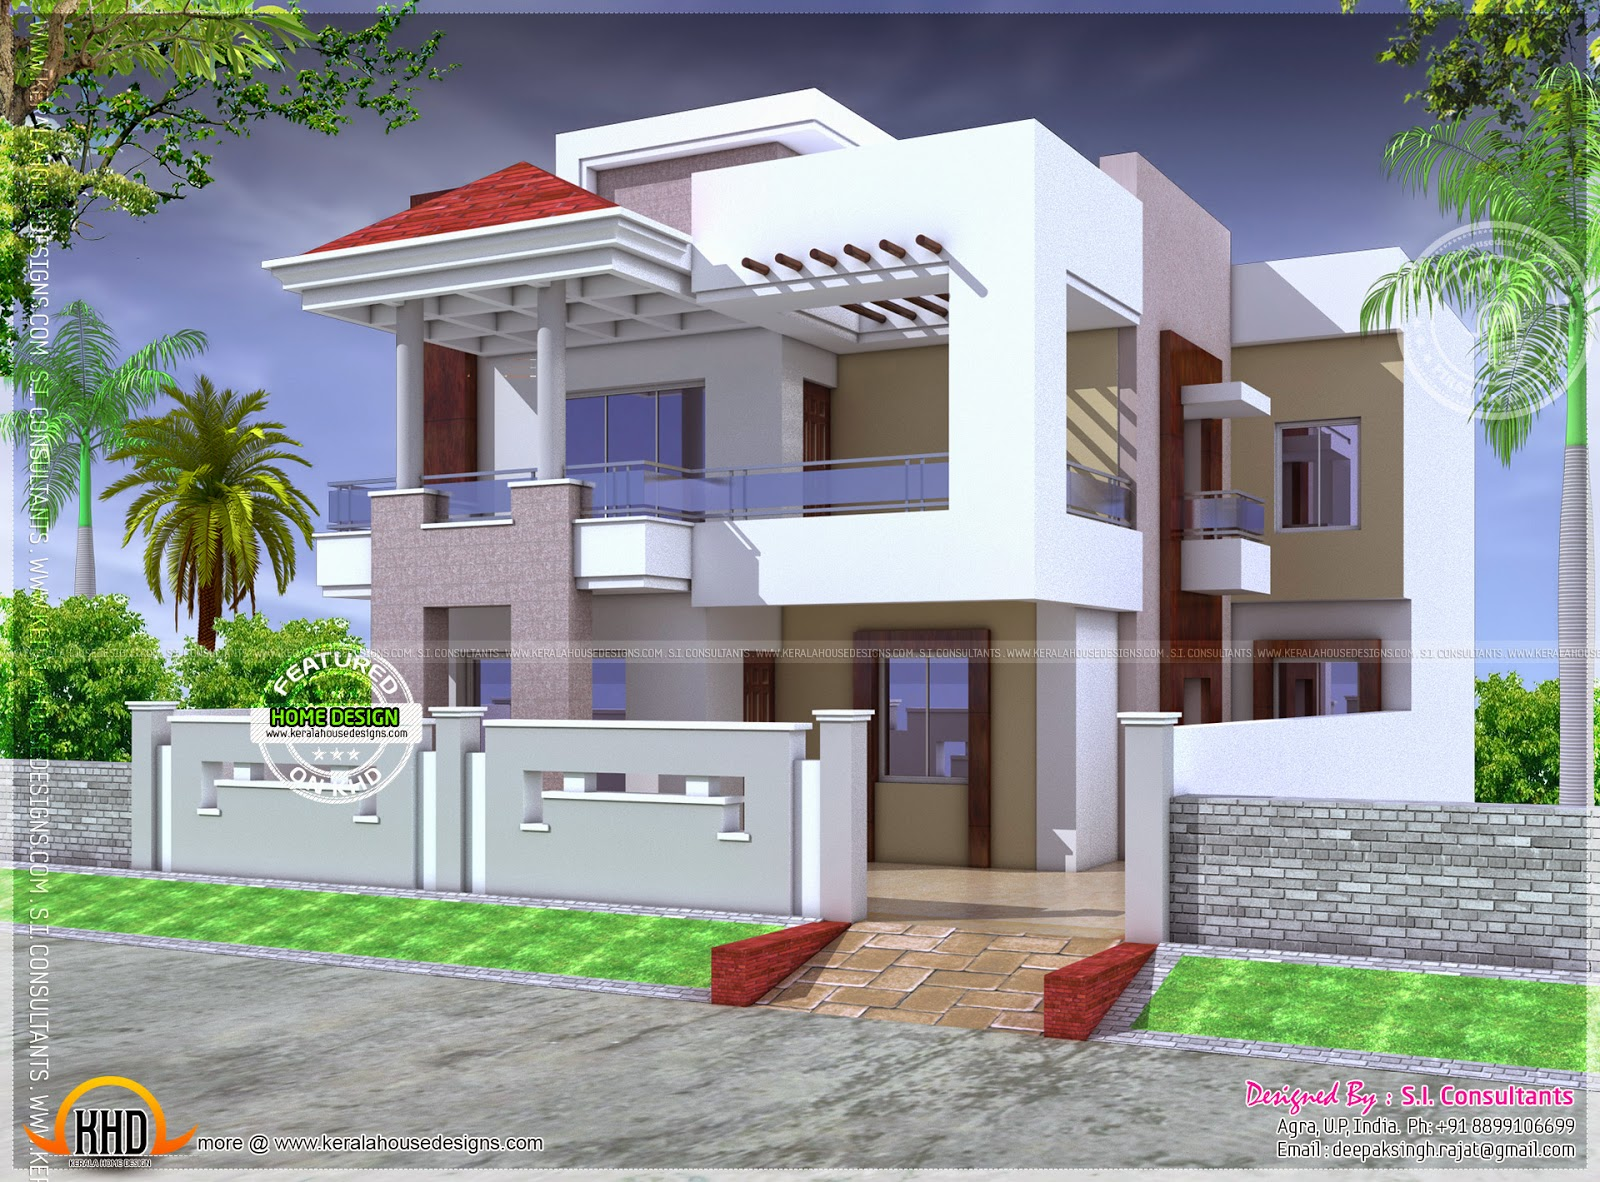 March 2014 kerala home design and floor plans for House design indian style plan and elevation